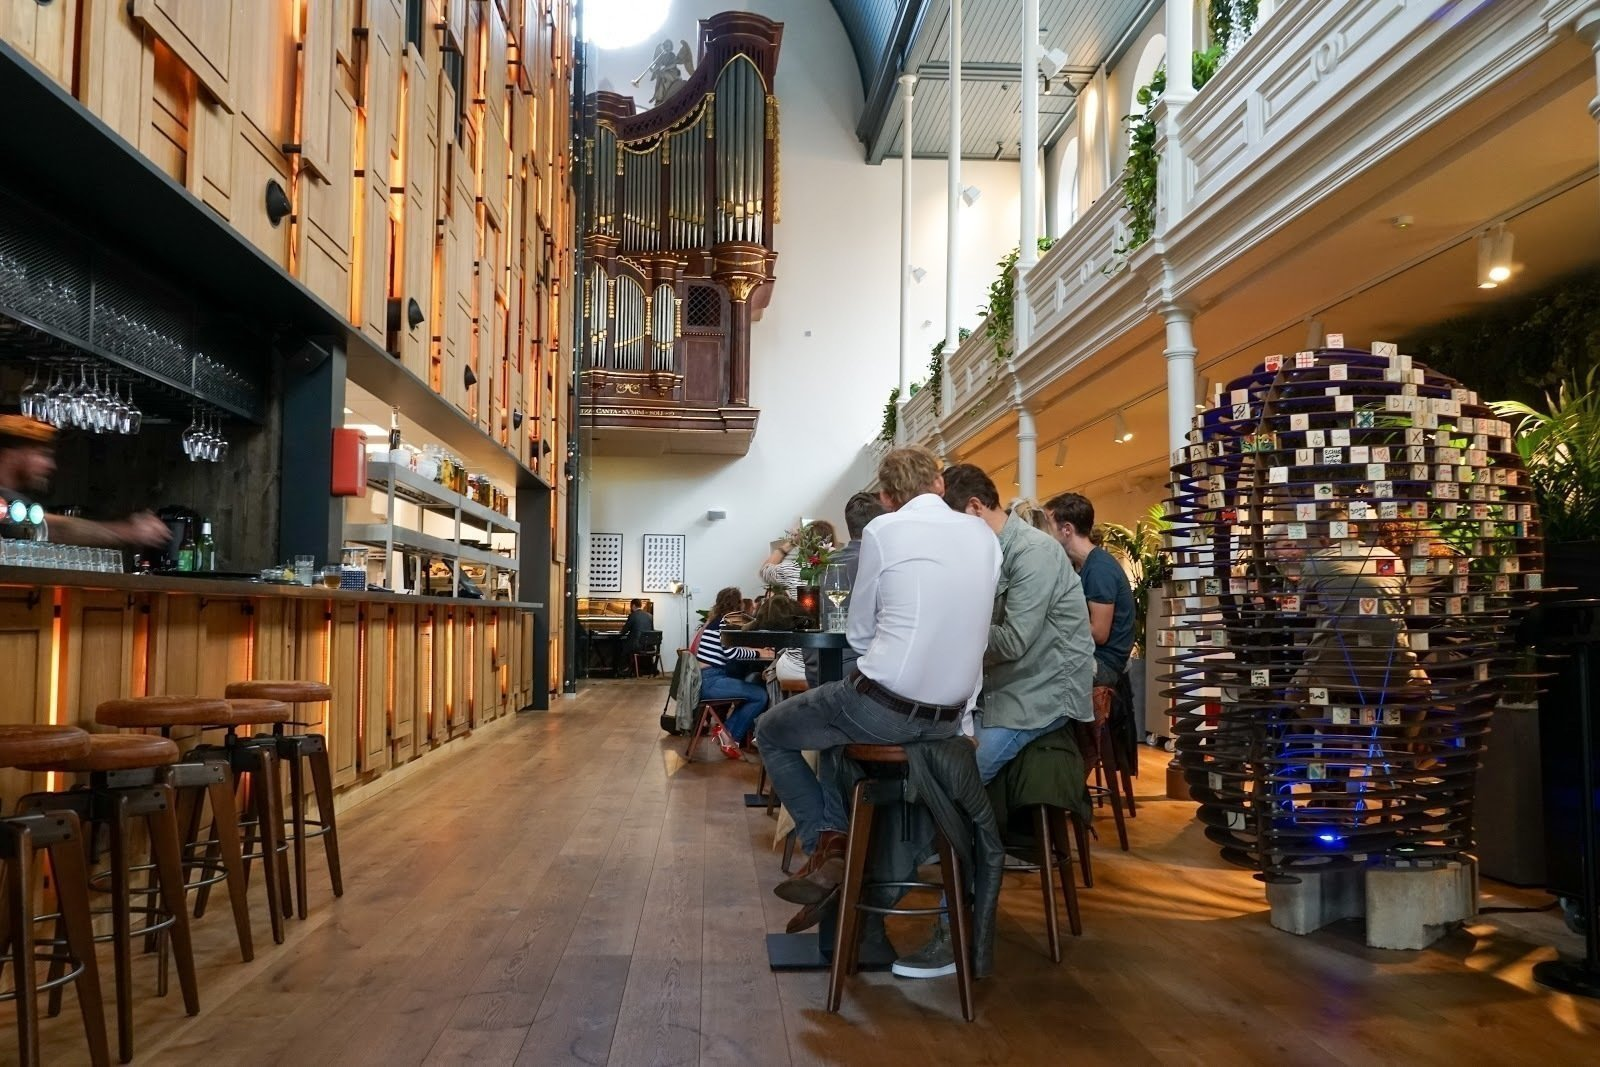 BUNK: A Work-Friendly Place in Utrecht